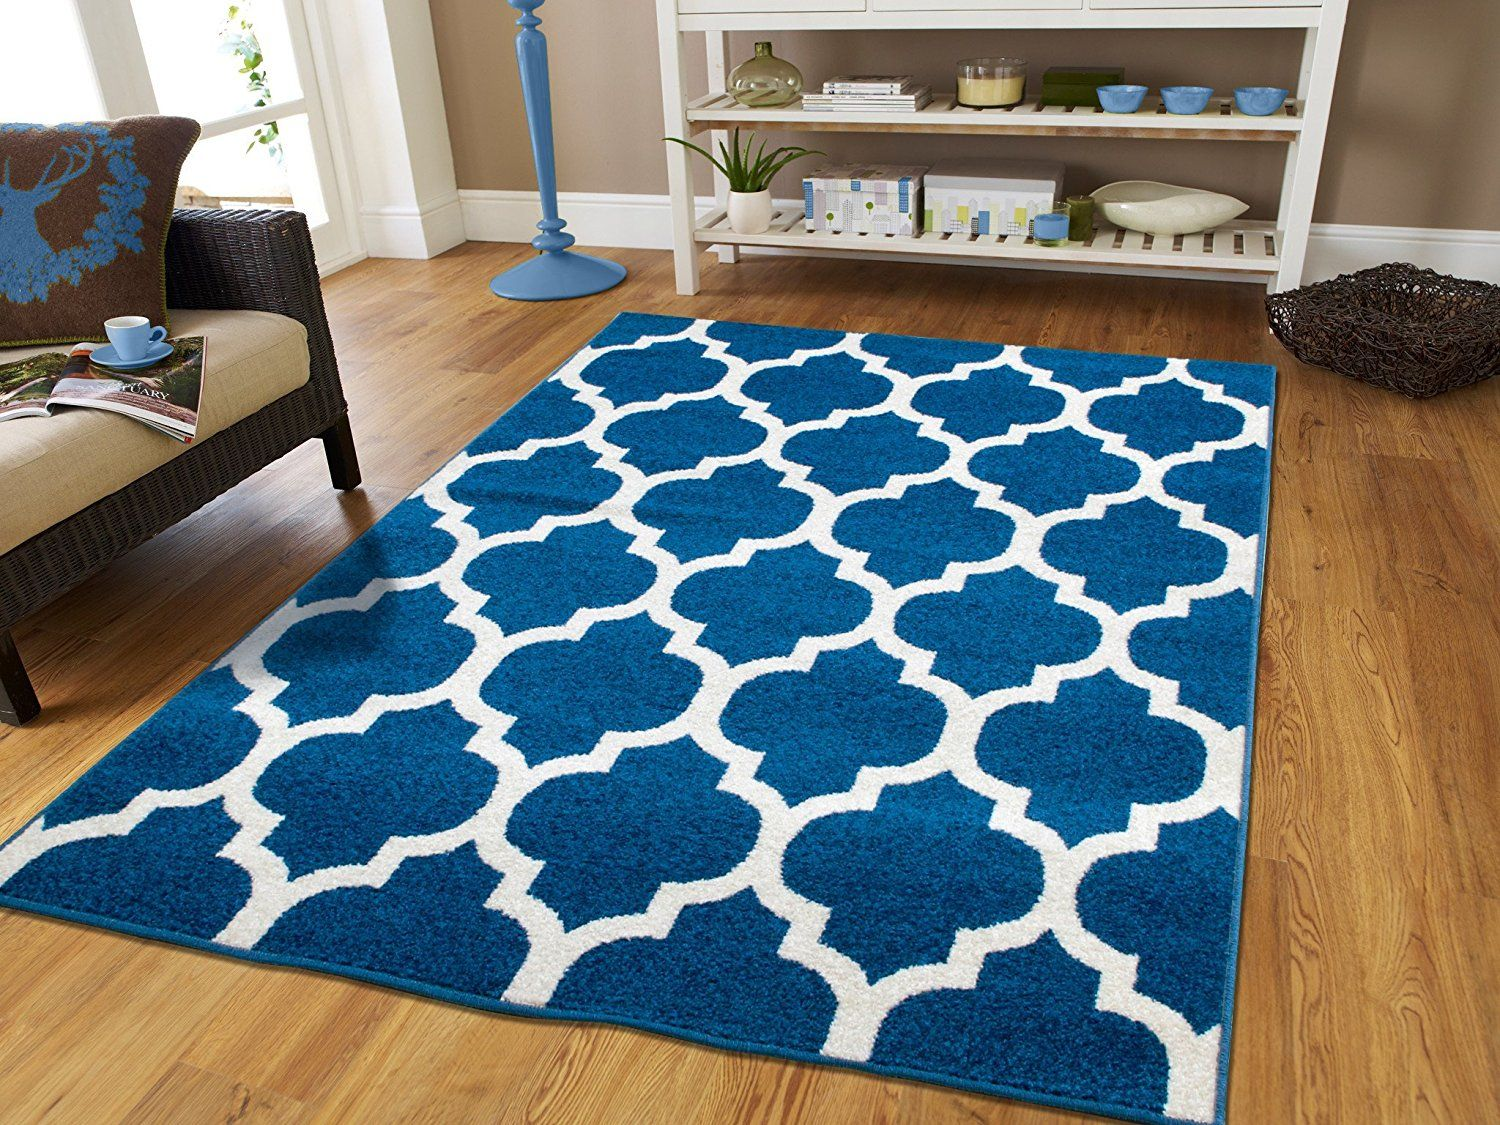 New Fashion Luxury Two Colors Blue And White Morrocan Trellis Area Rug For Living Room